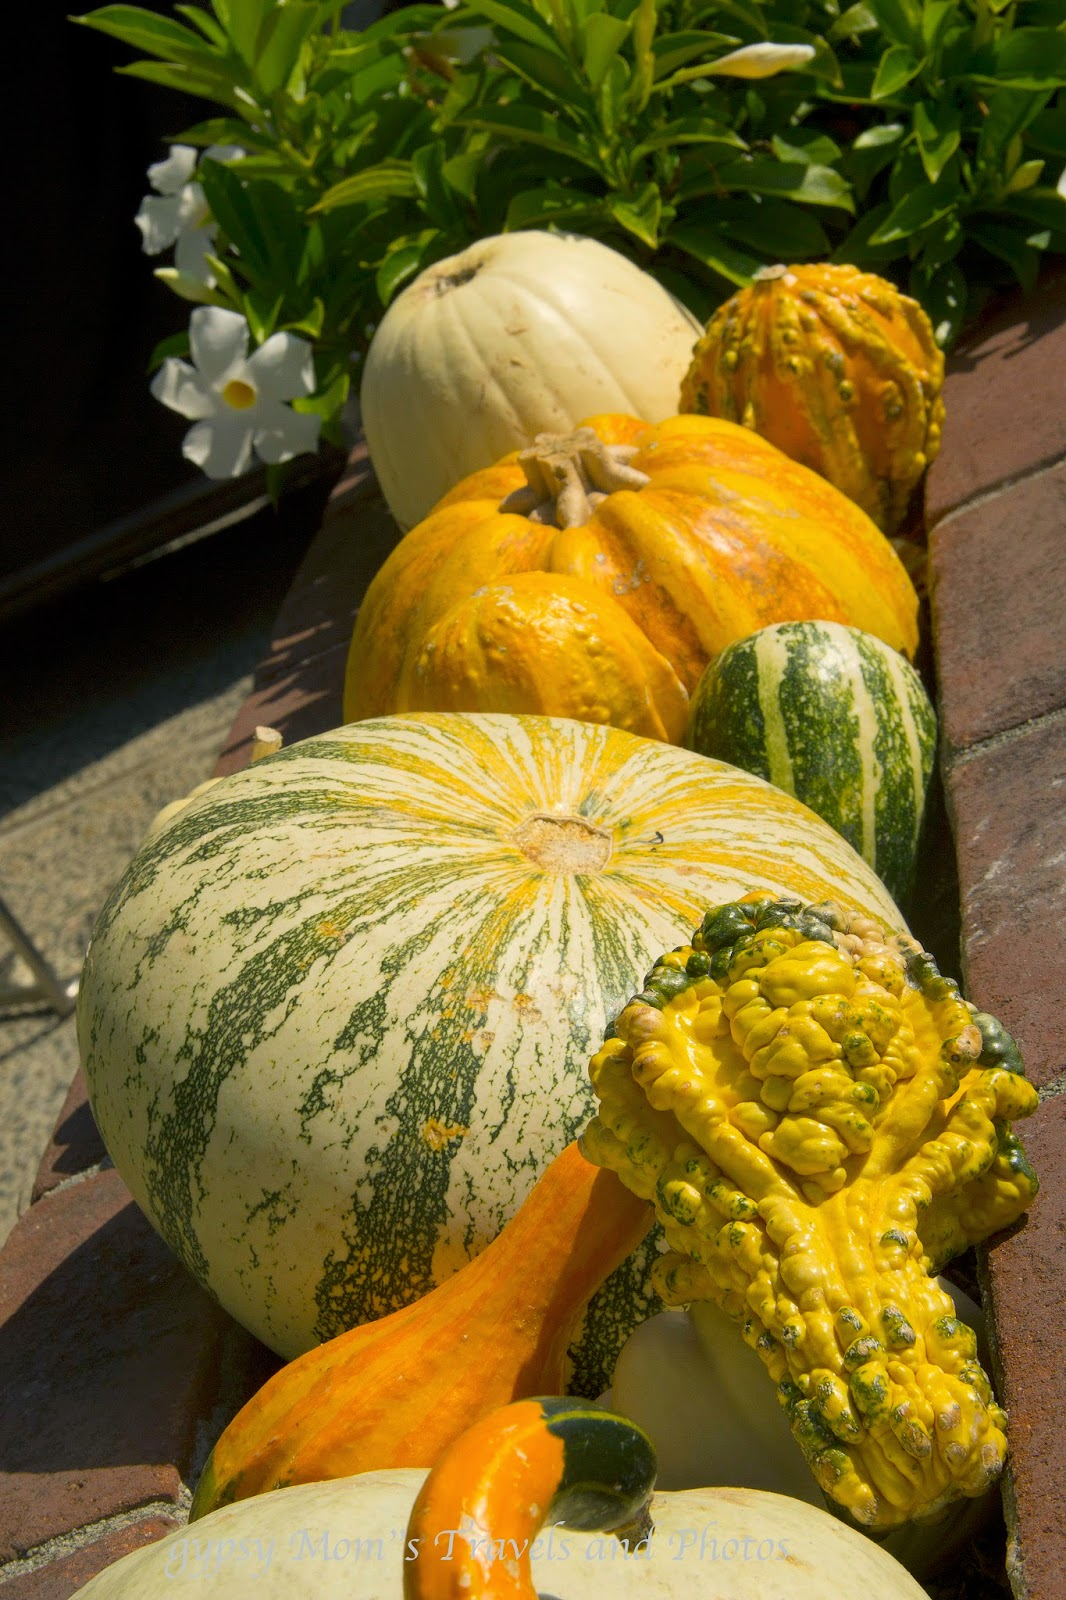 Pumpkins and gourd in front of house on Balboa Island